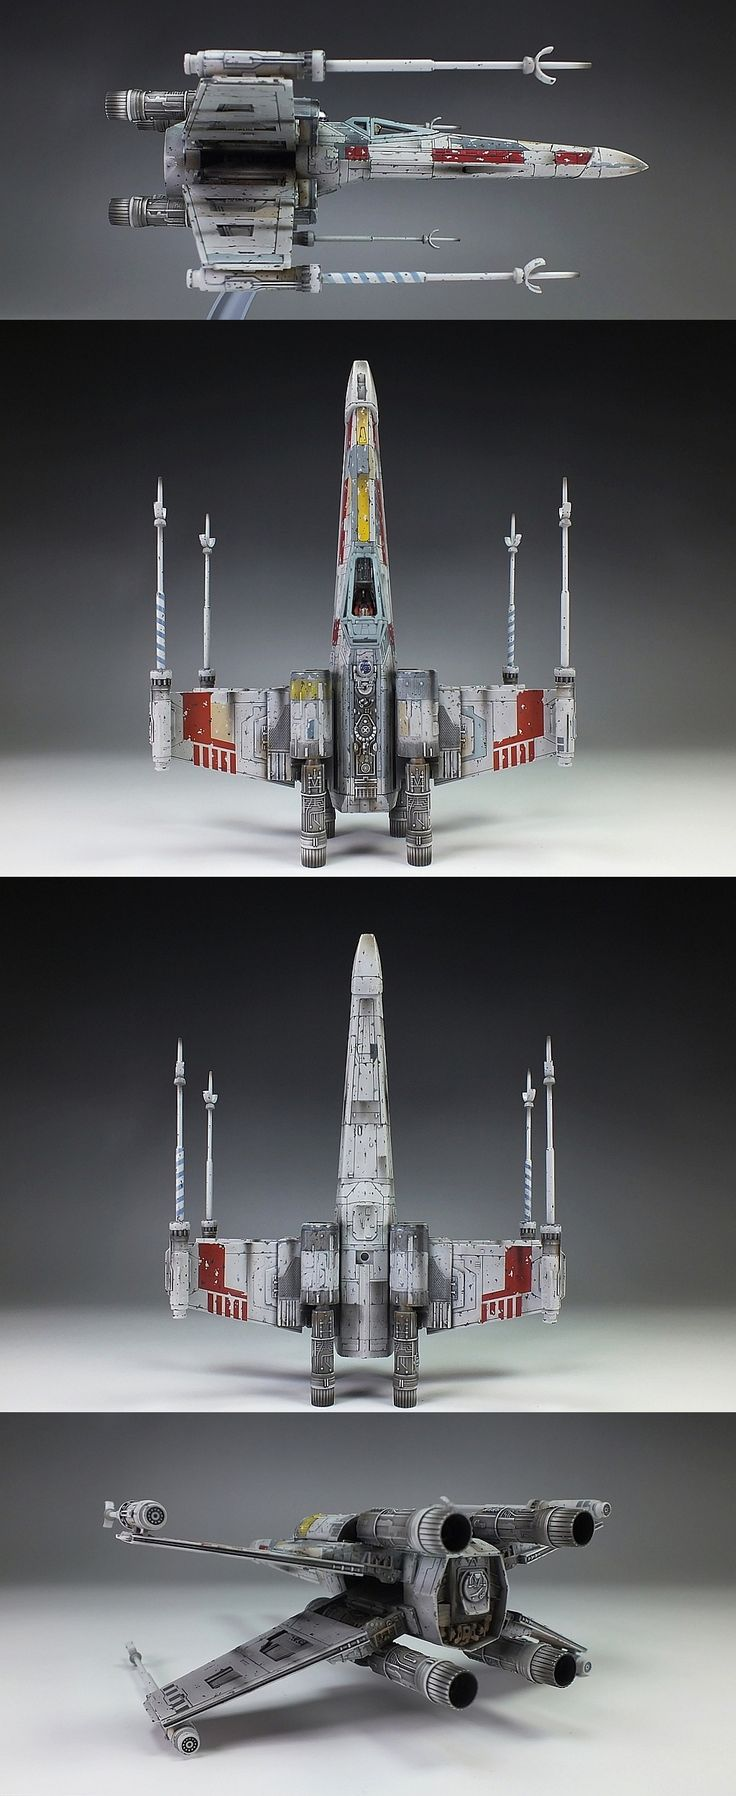 Bandai x Star Wars 1/72 X-Wing Starfighter: Amazing Work by oyoshicity. Full Photoreview Hi res Images http://www.gunjap.net/site/?p=224632